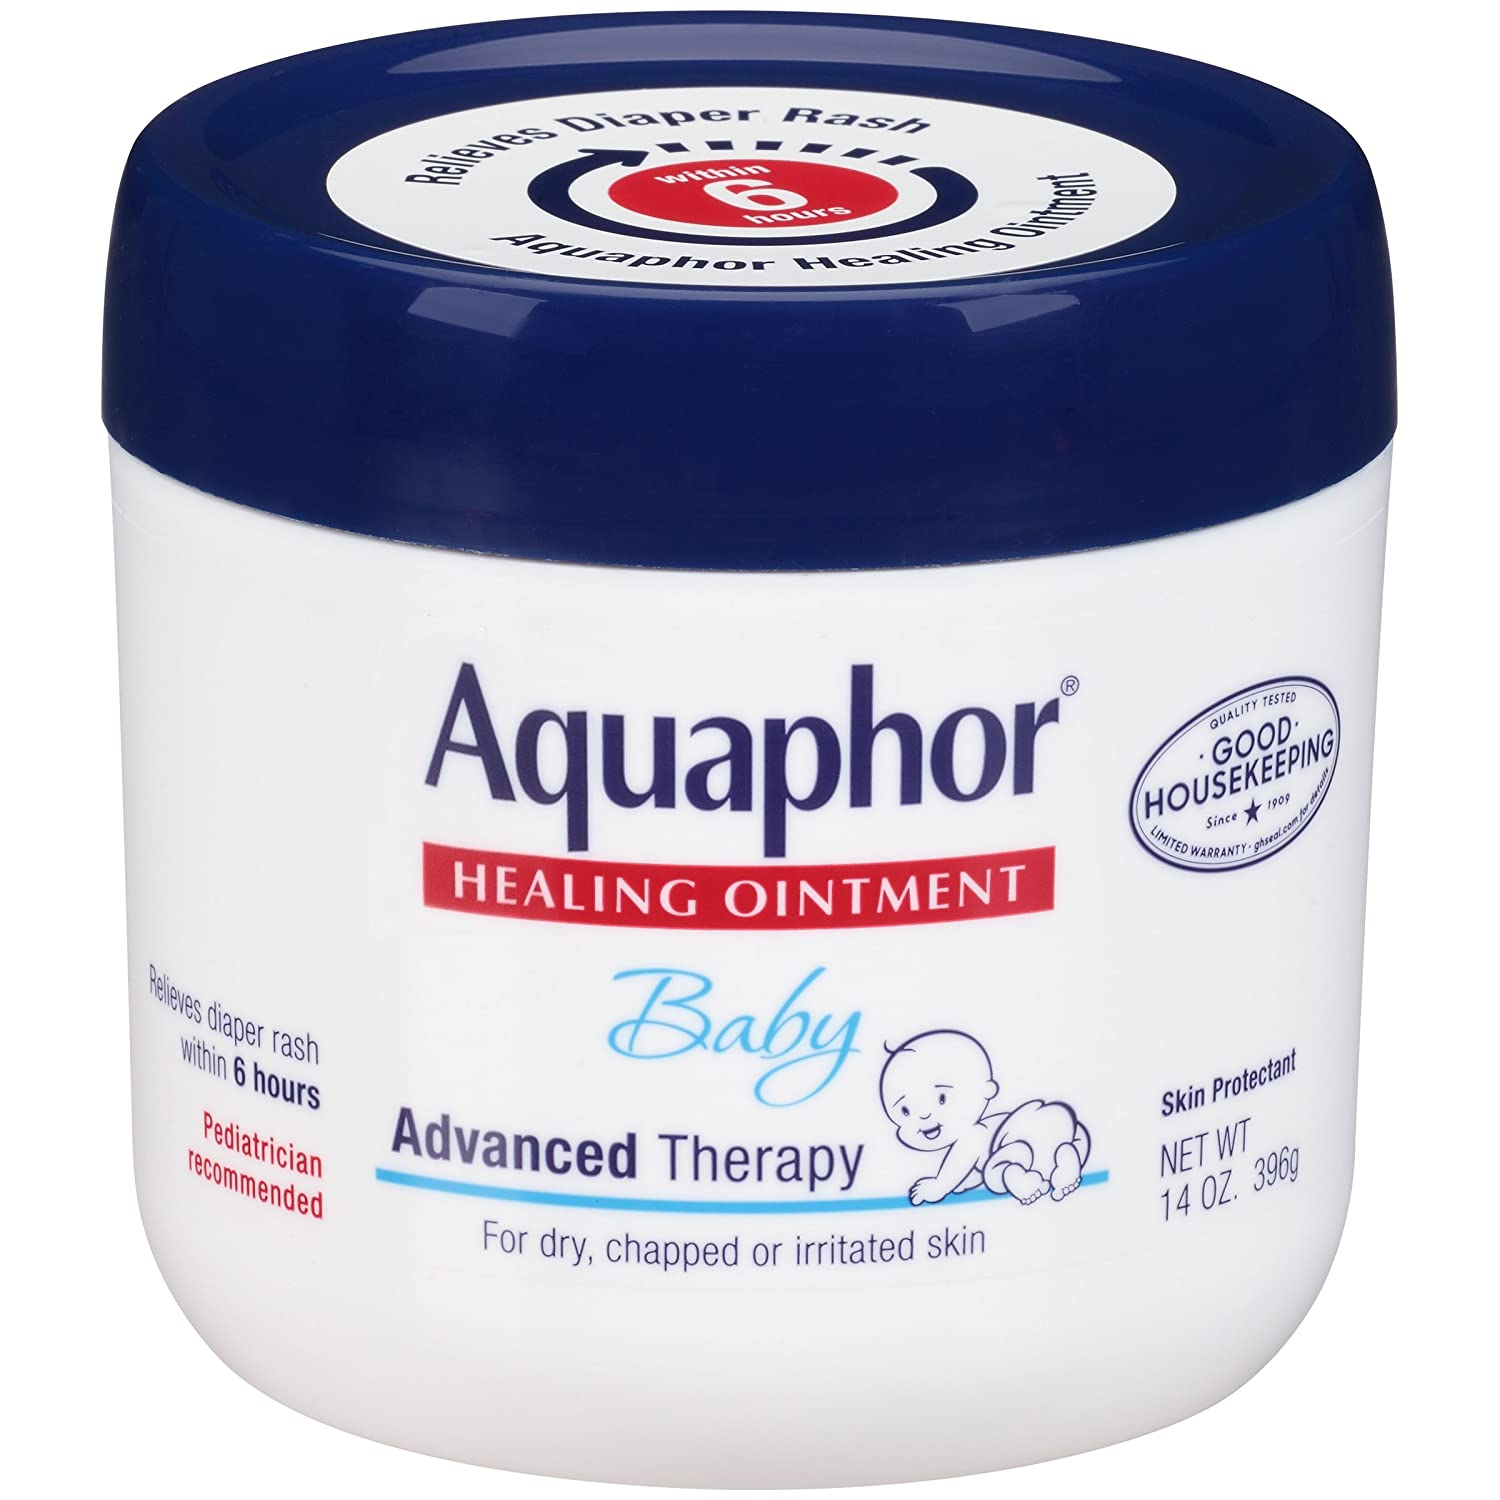 Aquaphor Baby Healing Ointment for Dry or Cracked Skin, Jar - 14 Oz Beiersdorf KC001274-3